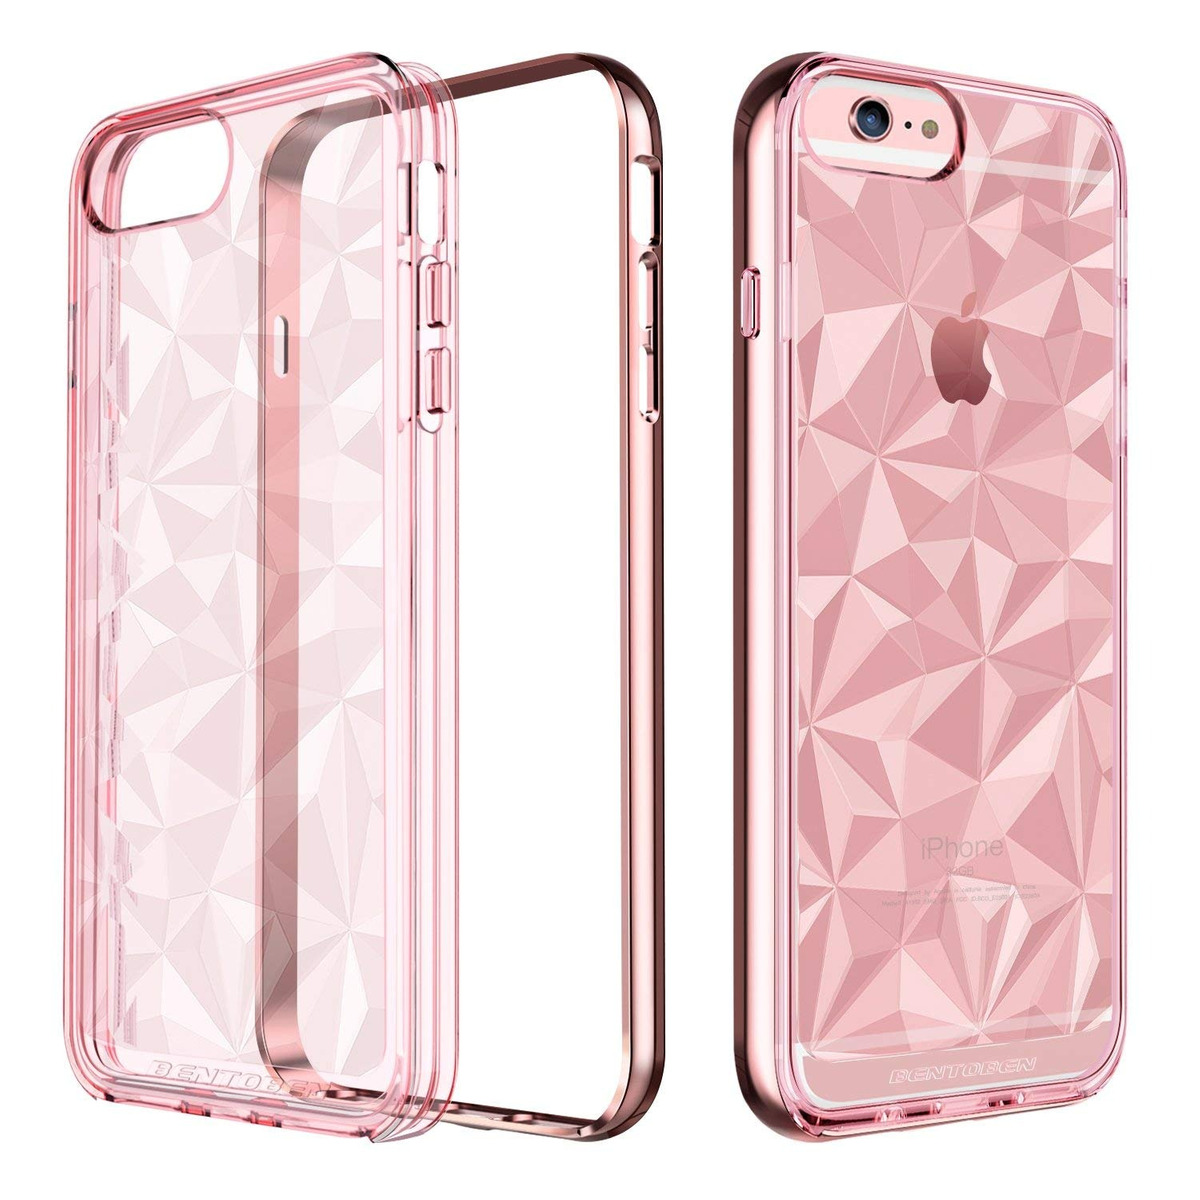 d0e38087348 Bentoben iPhone 6-plus Funda, iPhone 6s-plus Funda, Clear Sh ...